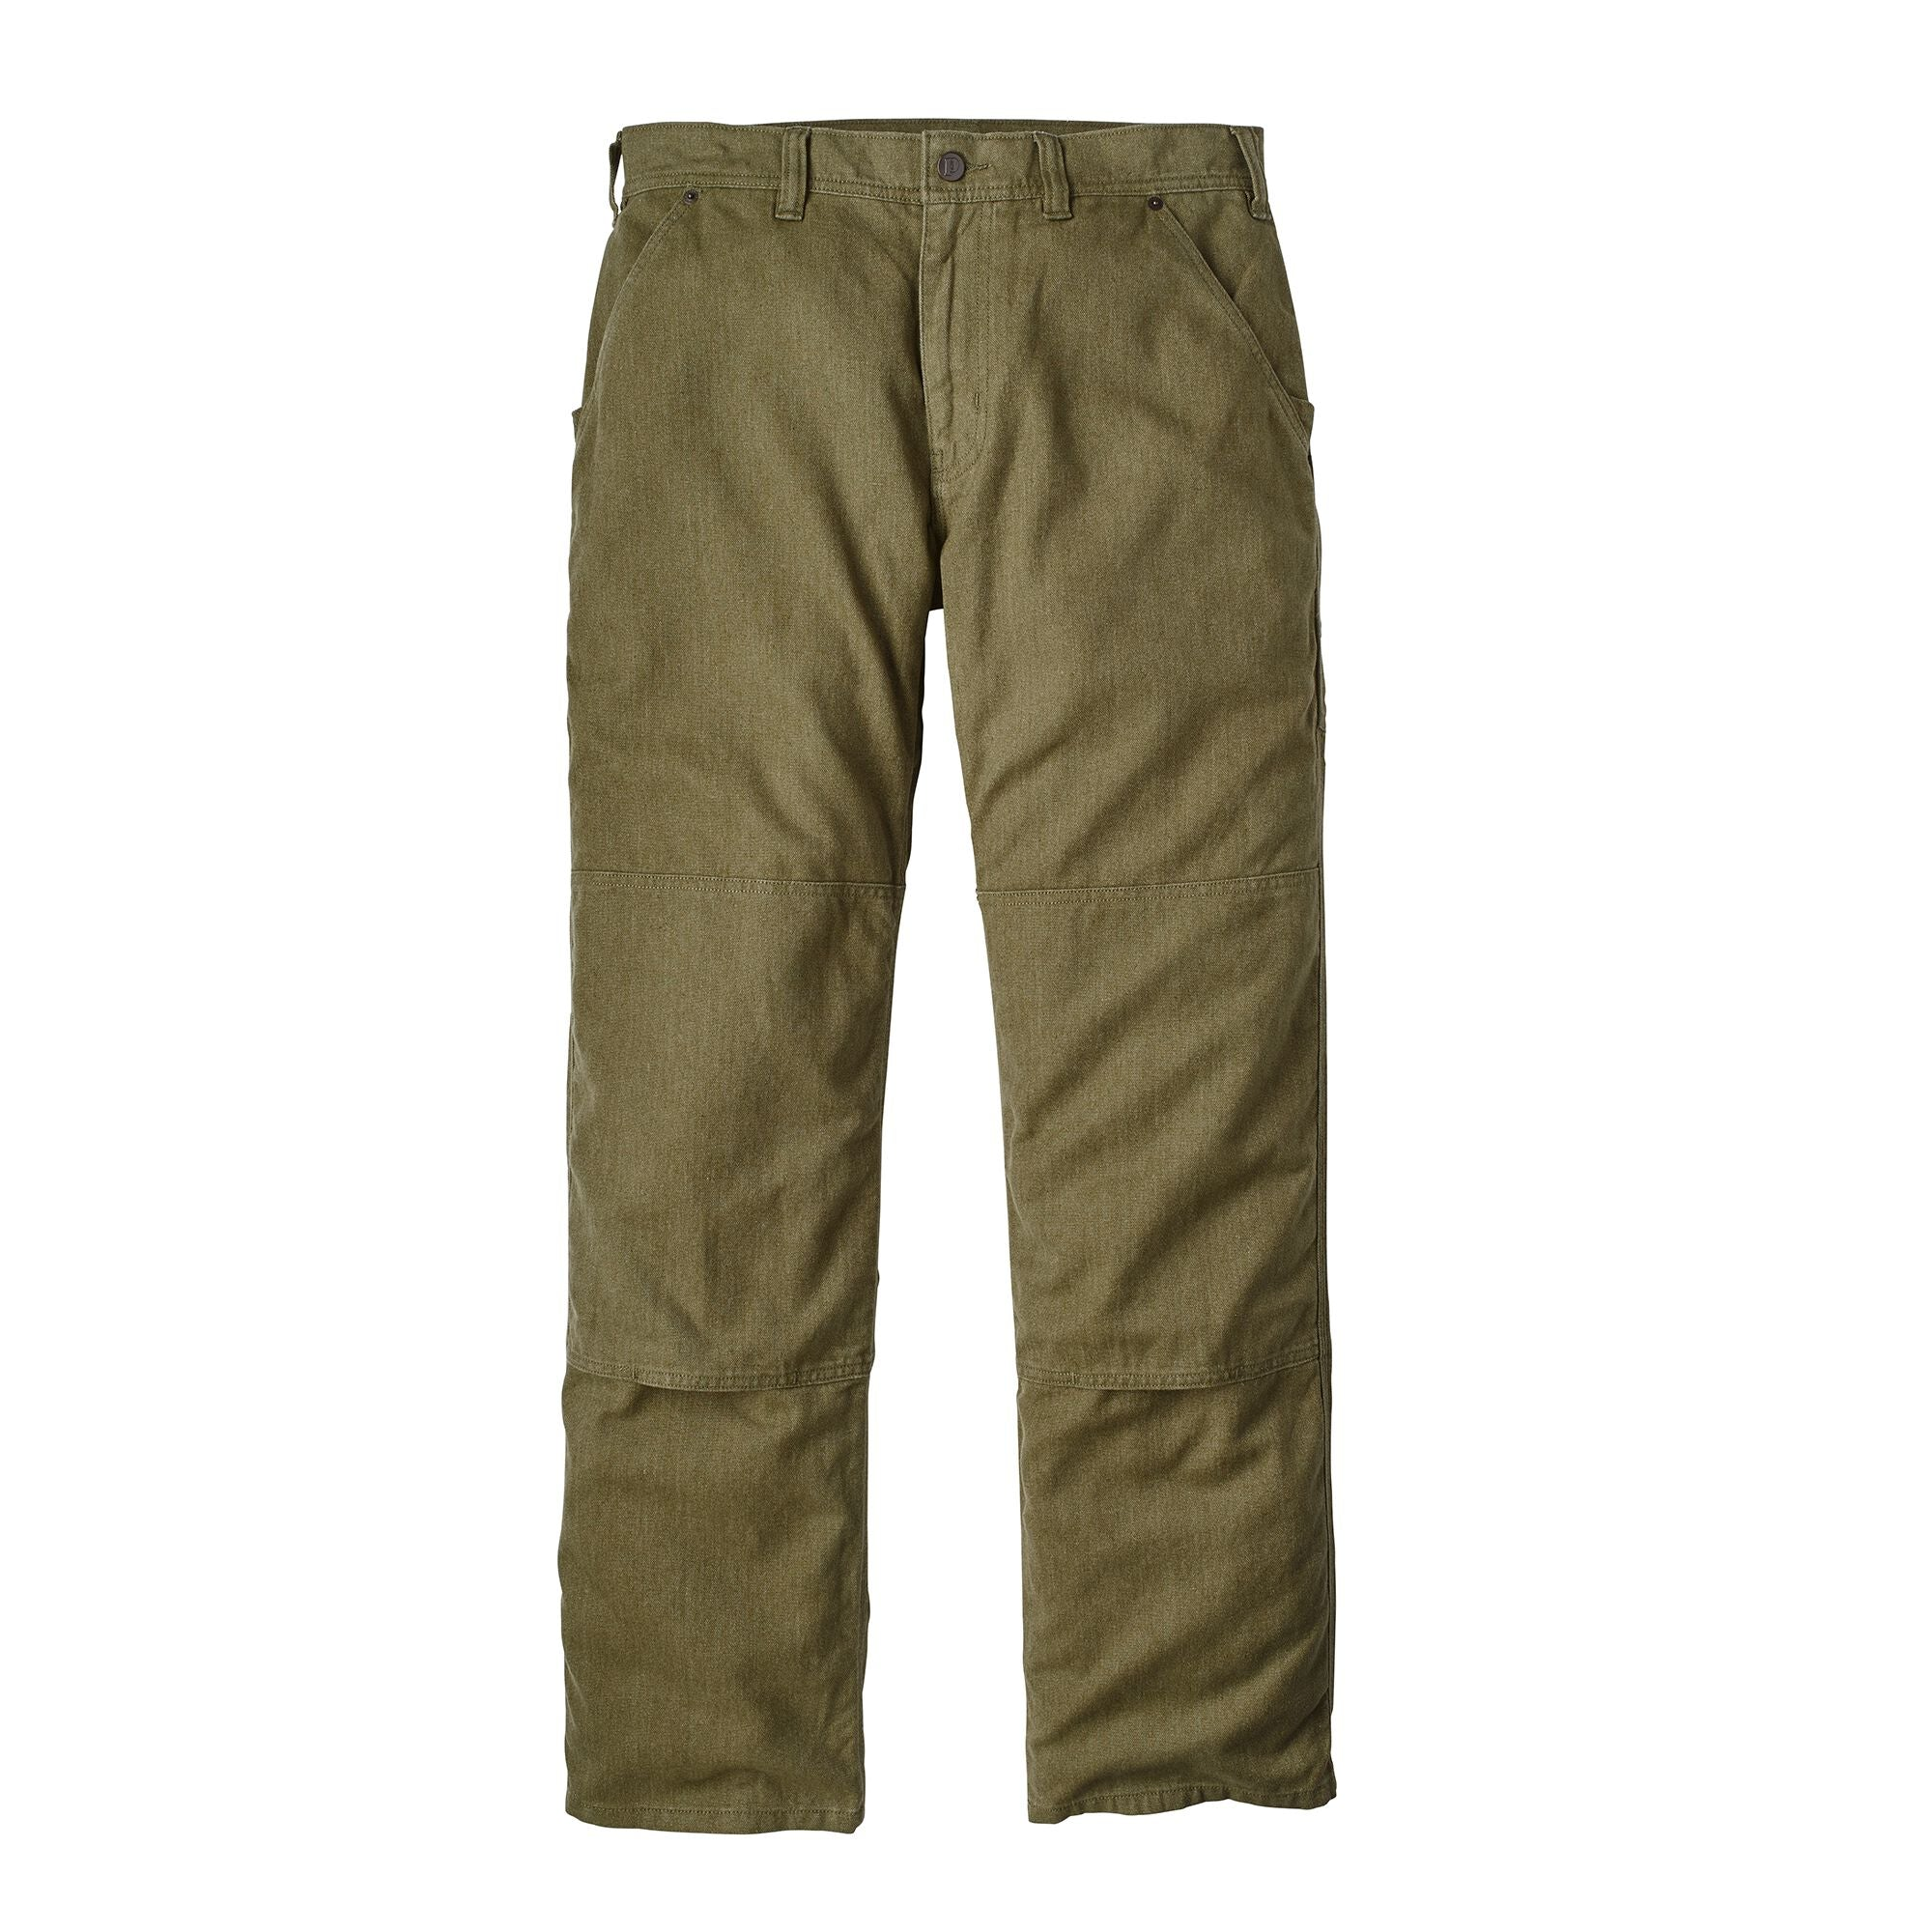 Pantalón Hombre All Seasons Hemp Canvas Double Knee - Regular Verde Patagonia